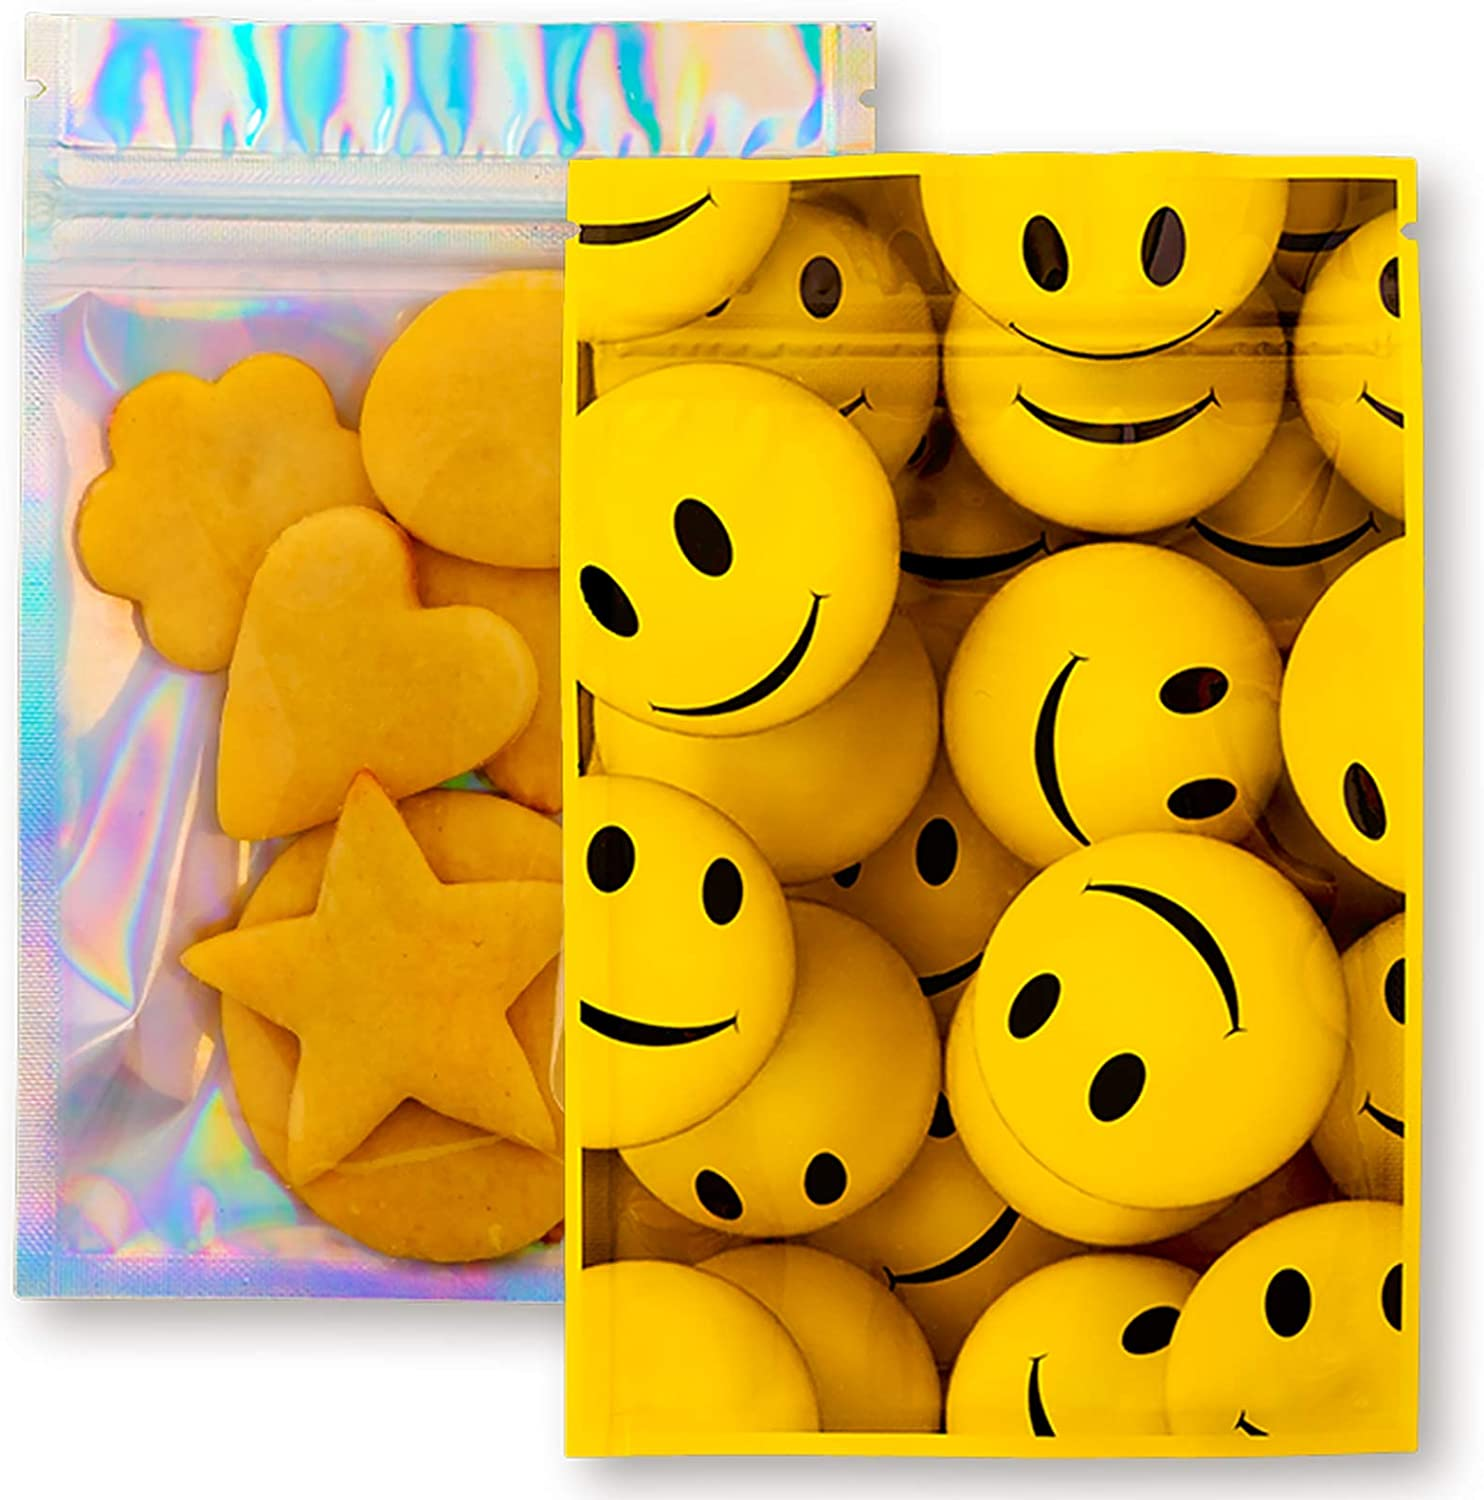 """Resealable Bags Ziplock Mylar Set -100 Pcs Water-Proof Smell-Proof Foil Bags 4"""" X 6"""" Size Packaging Supplies Cute Design Happy Face Pouches for Food Storage Snack Coffee Bracelet Eyelash Lip Gloss"""